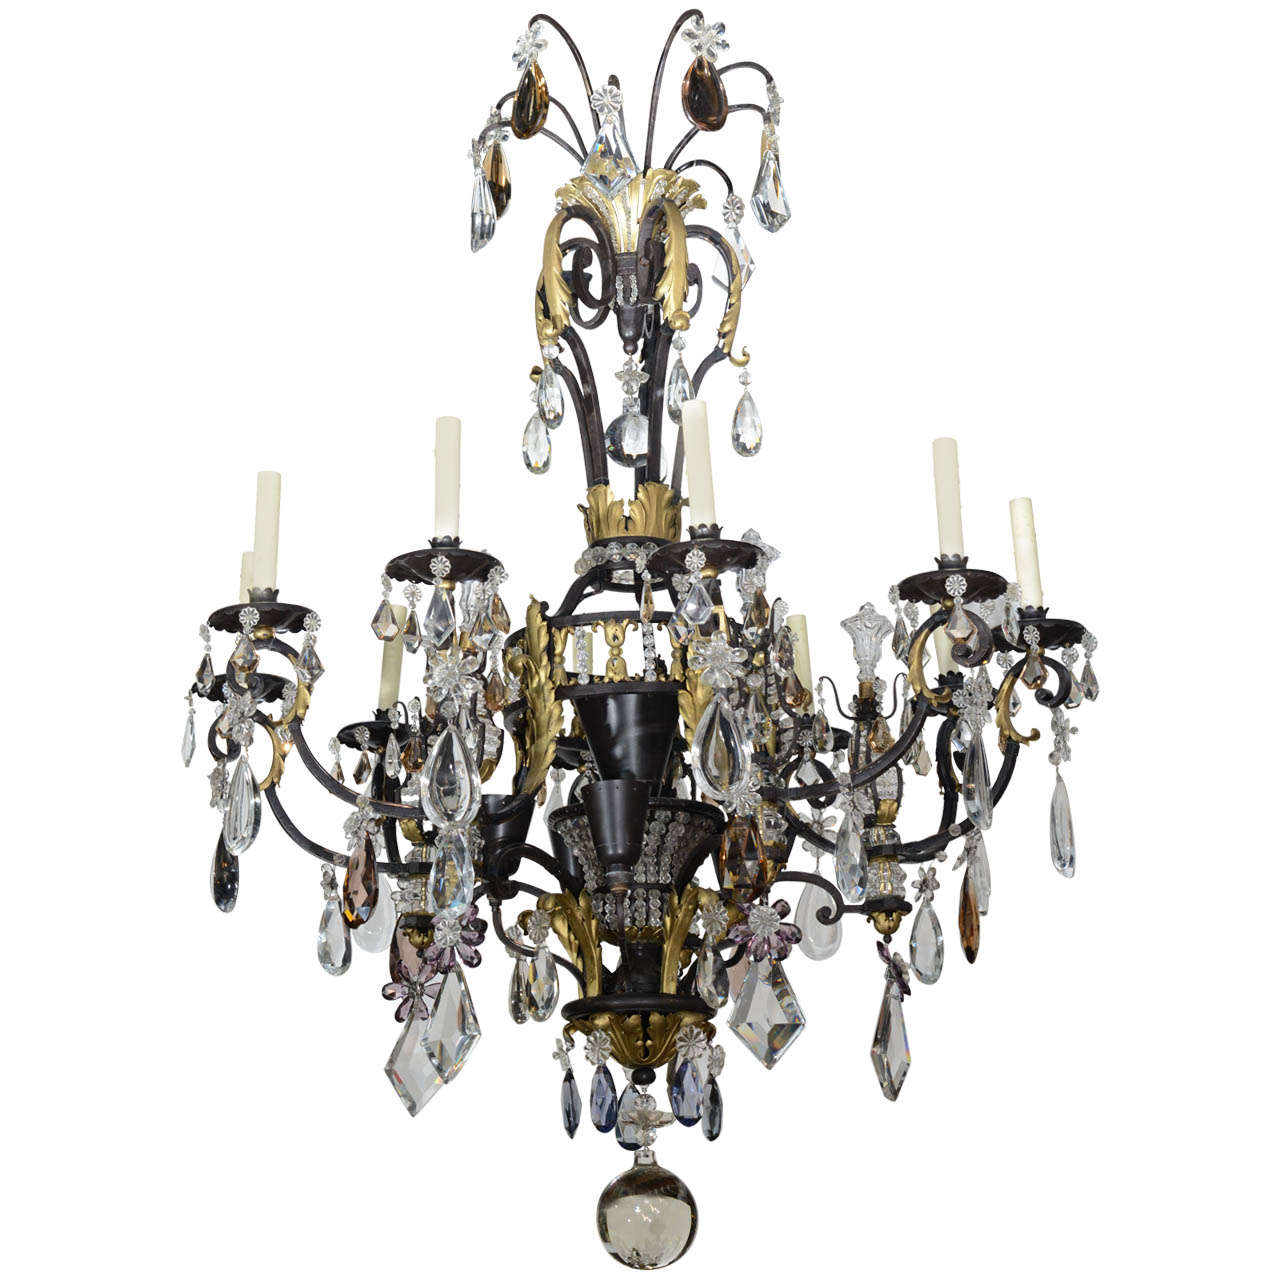 trimmed lighting balls wl chandelier crystal and dp com w swarovski chandeliers dressed amazon iron wrought